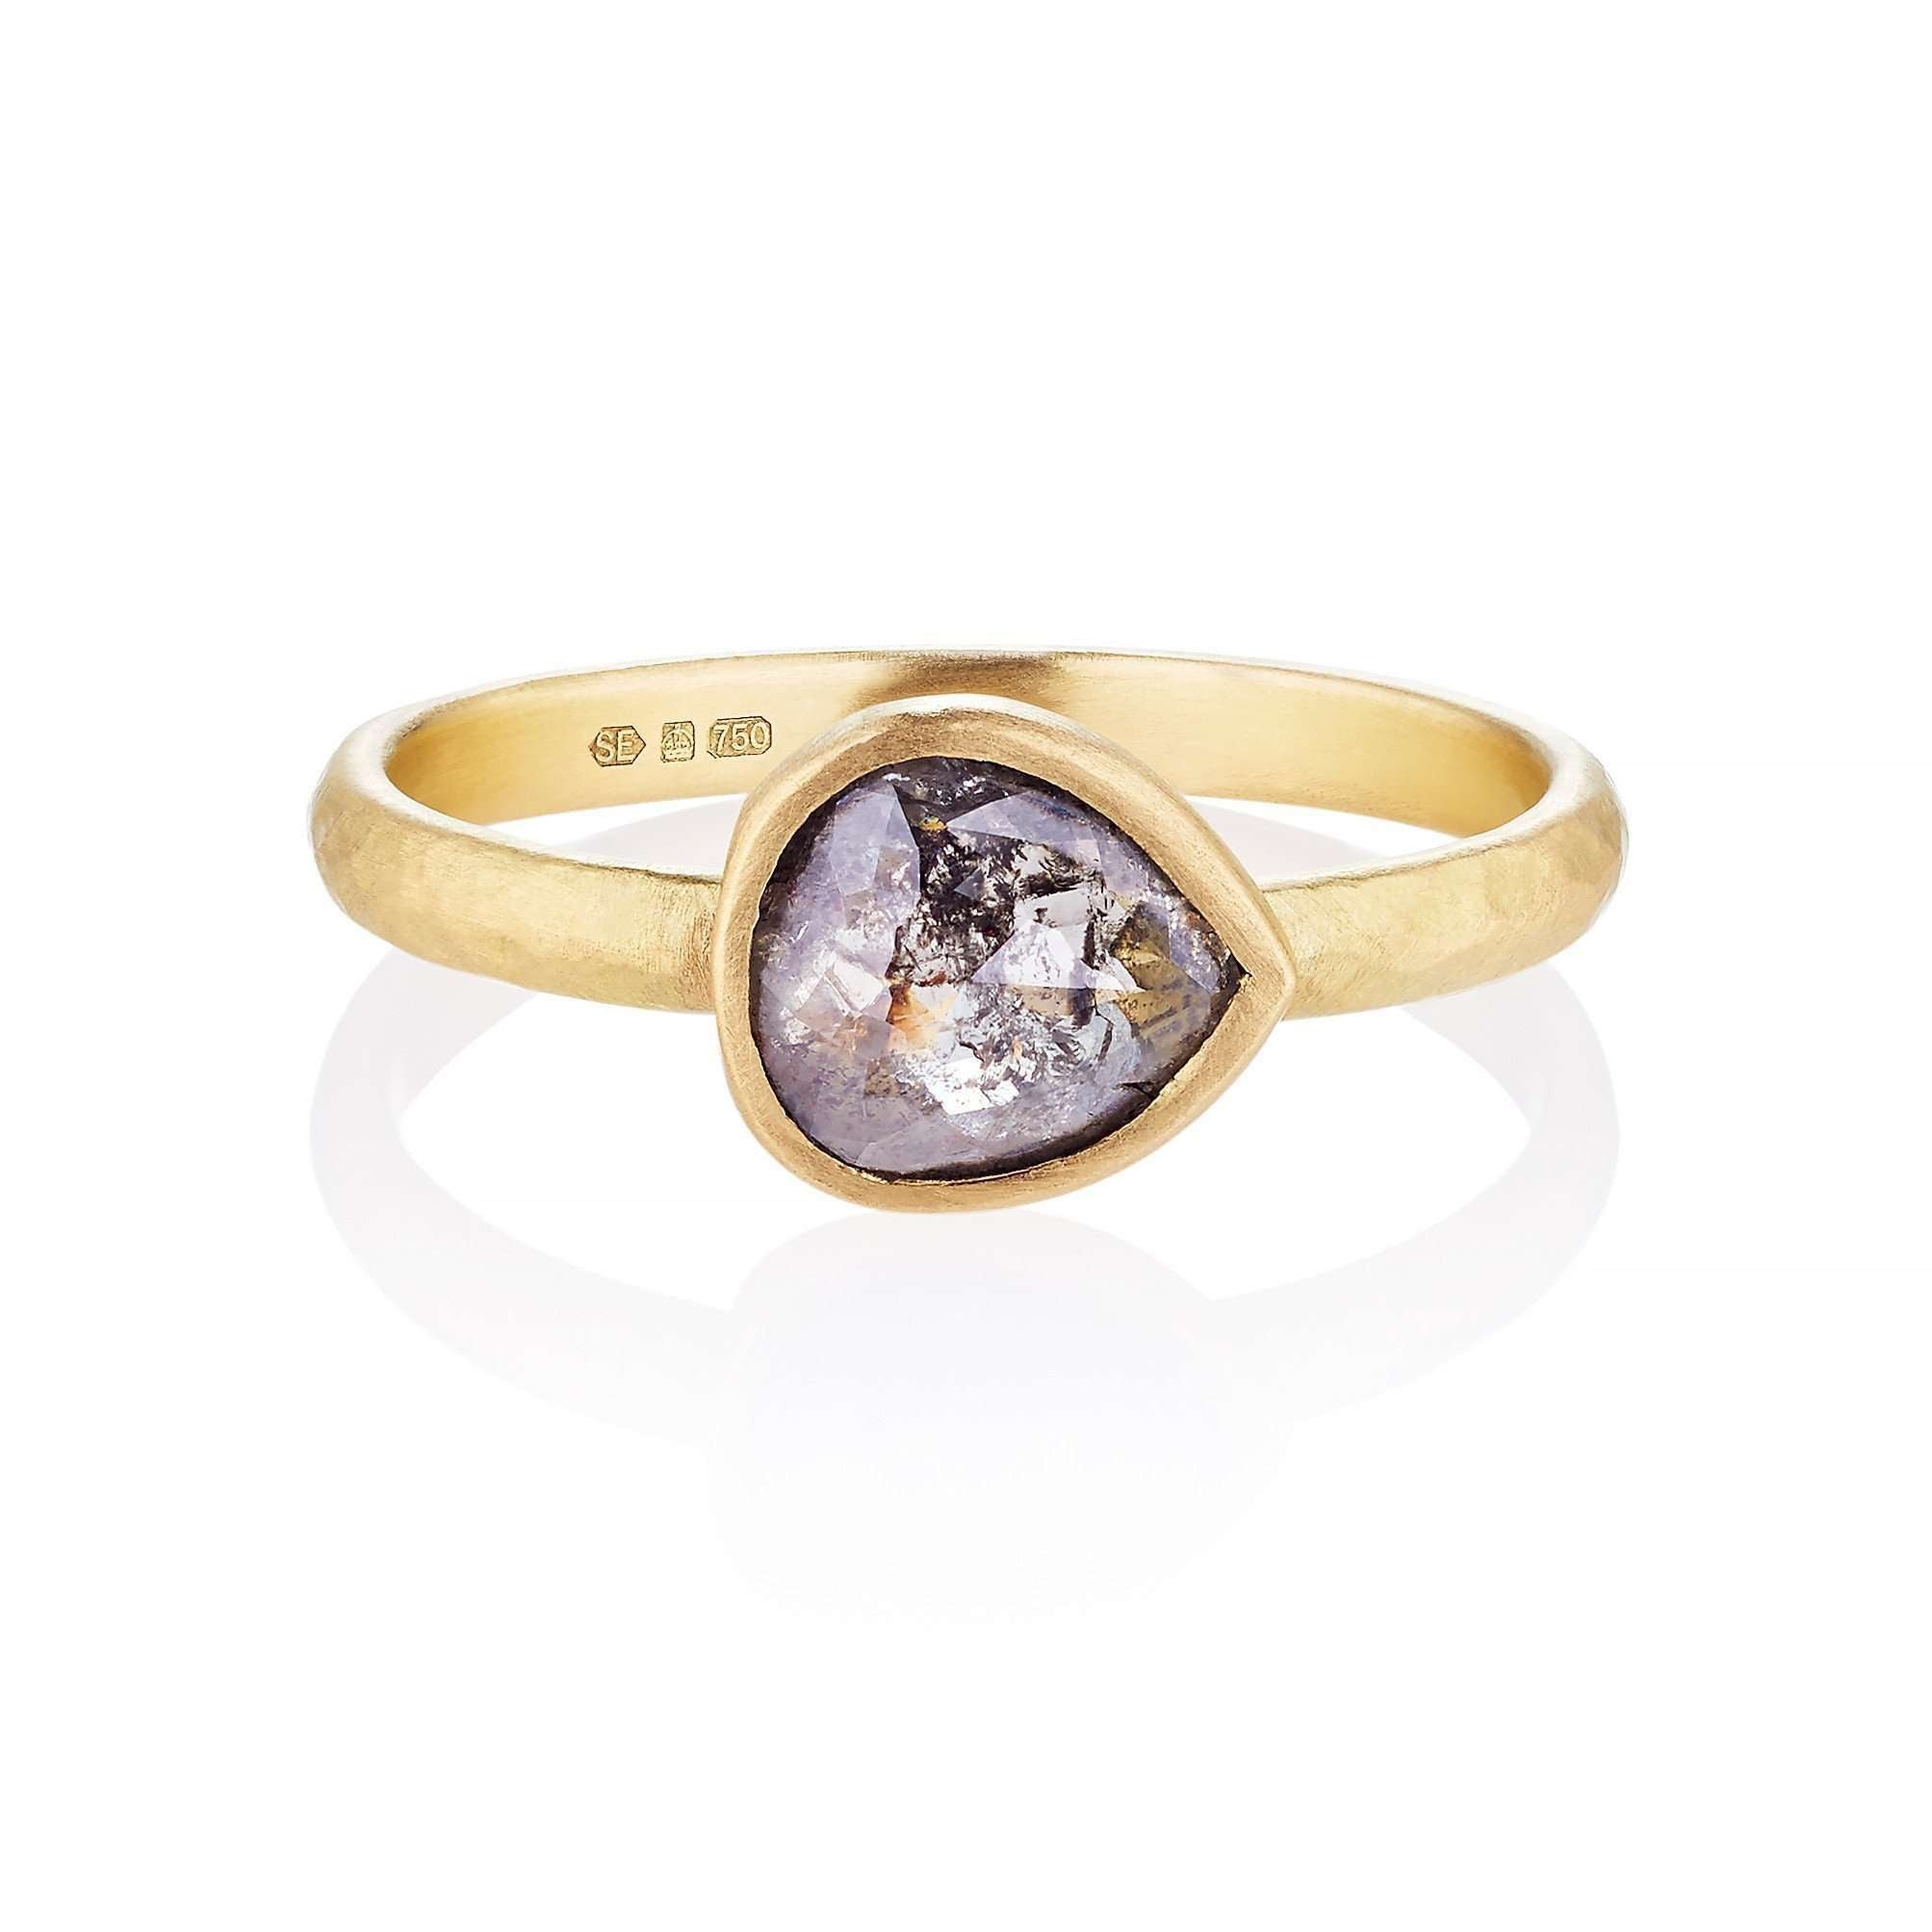 Neola Stacking Gold Ring - UK P - US 7 1/2 - EU 56 1/2 dNv9DhrZ